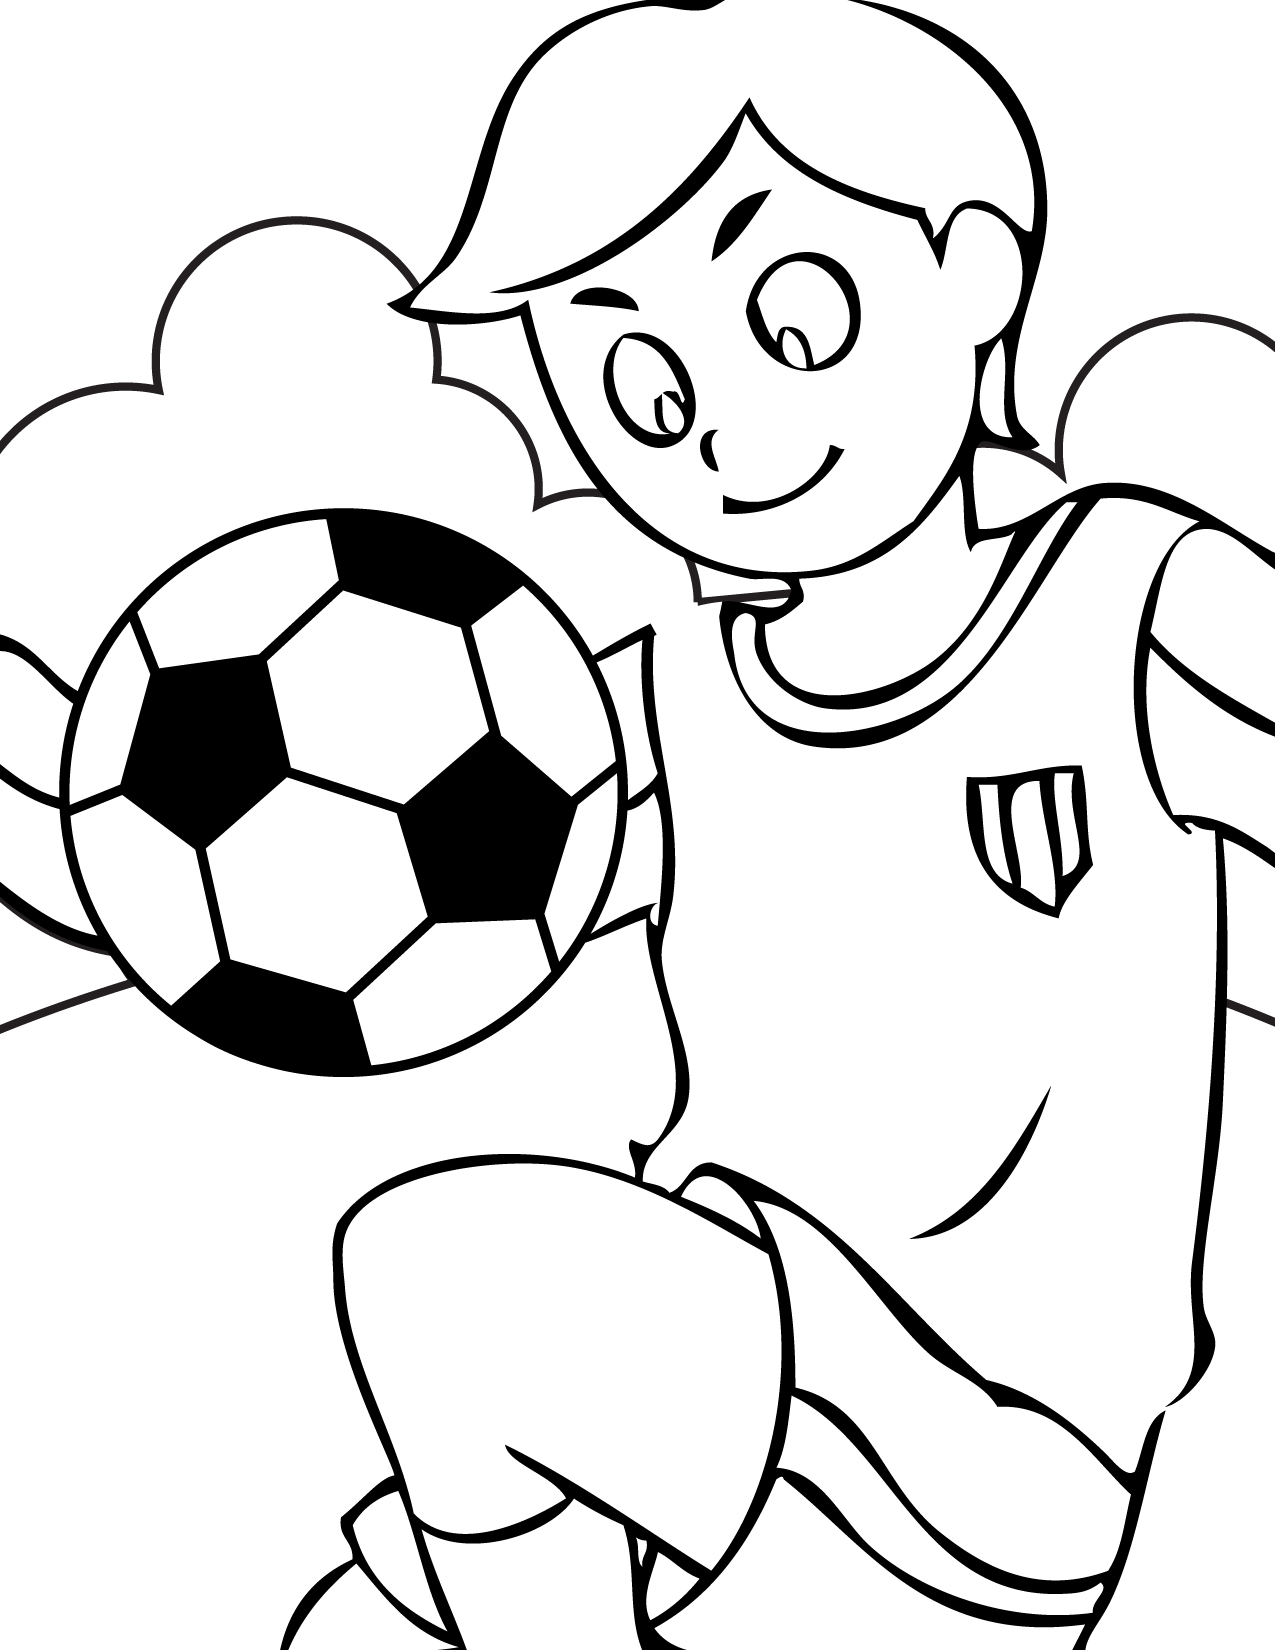 Free Sports Pictures For Kids Download Free Clip Art